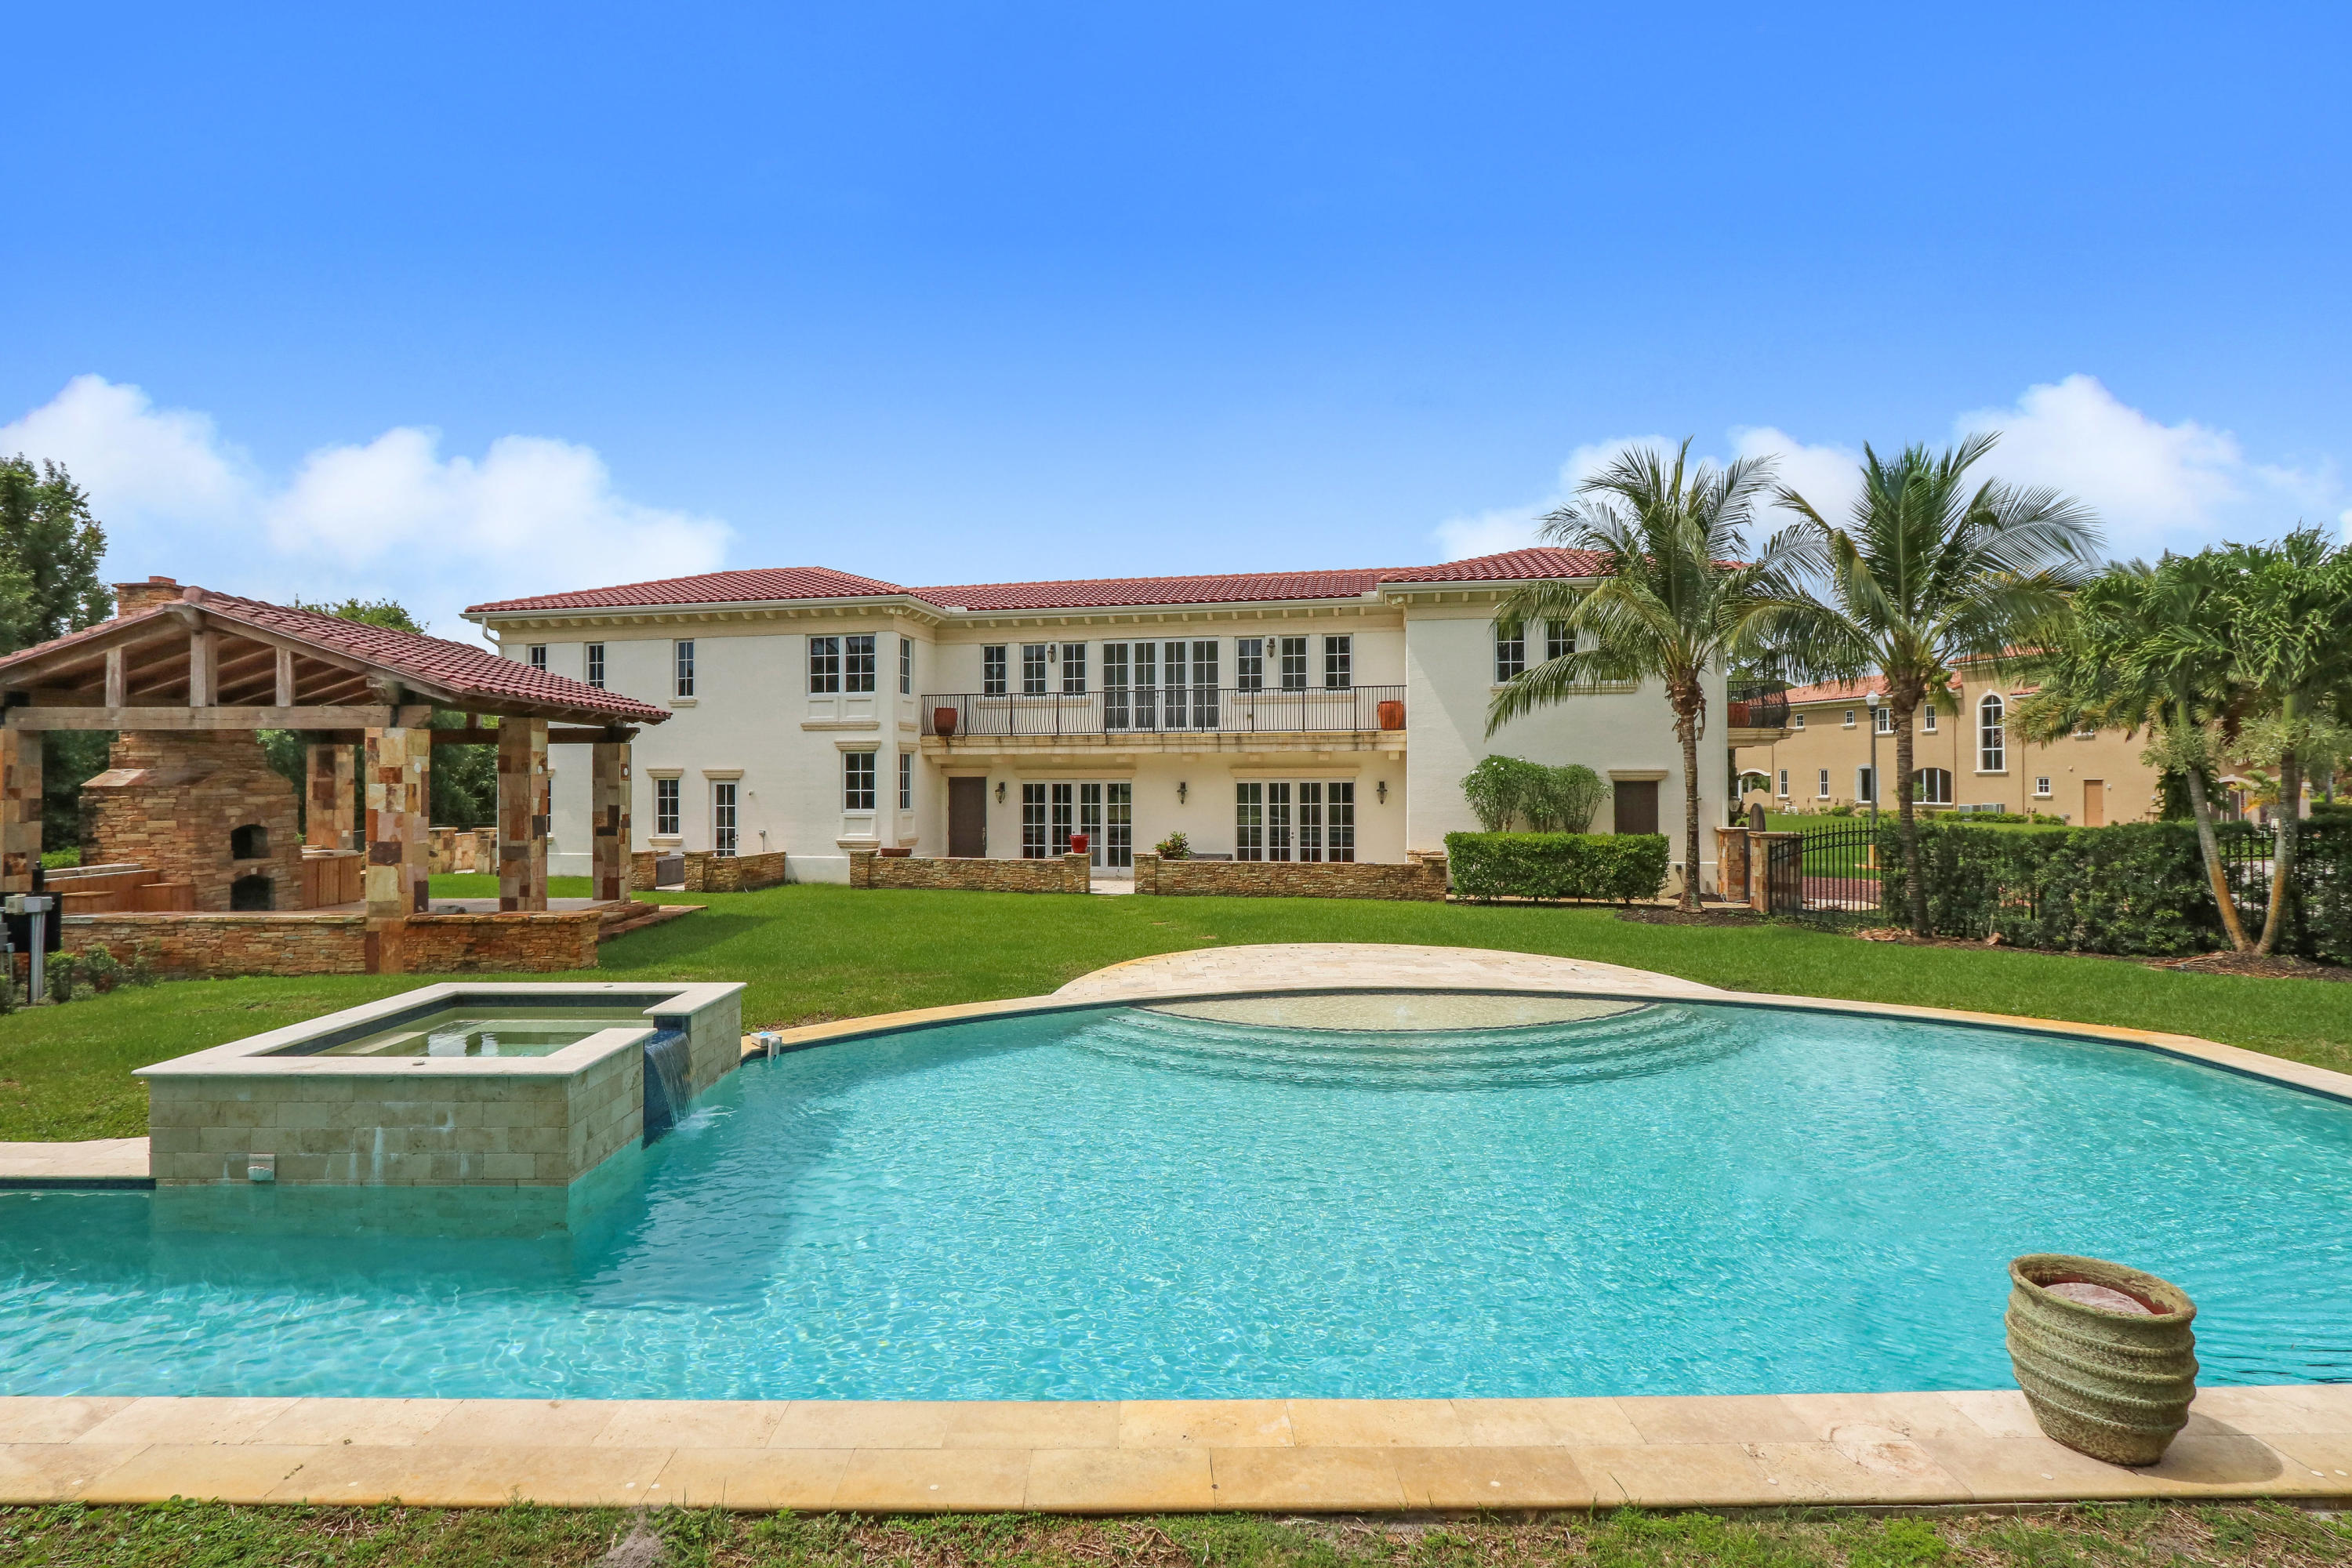 RESERVE HOMES FOR SALE